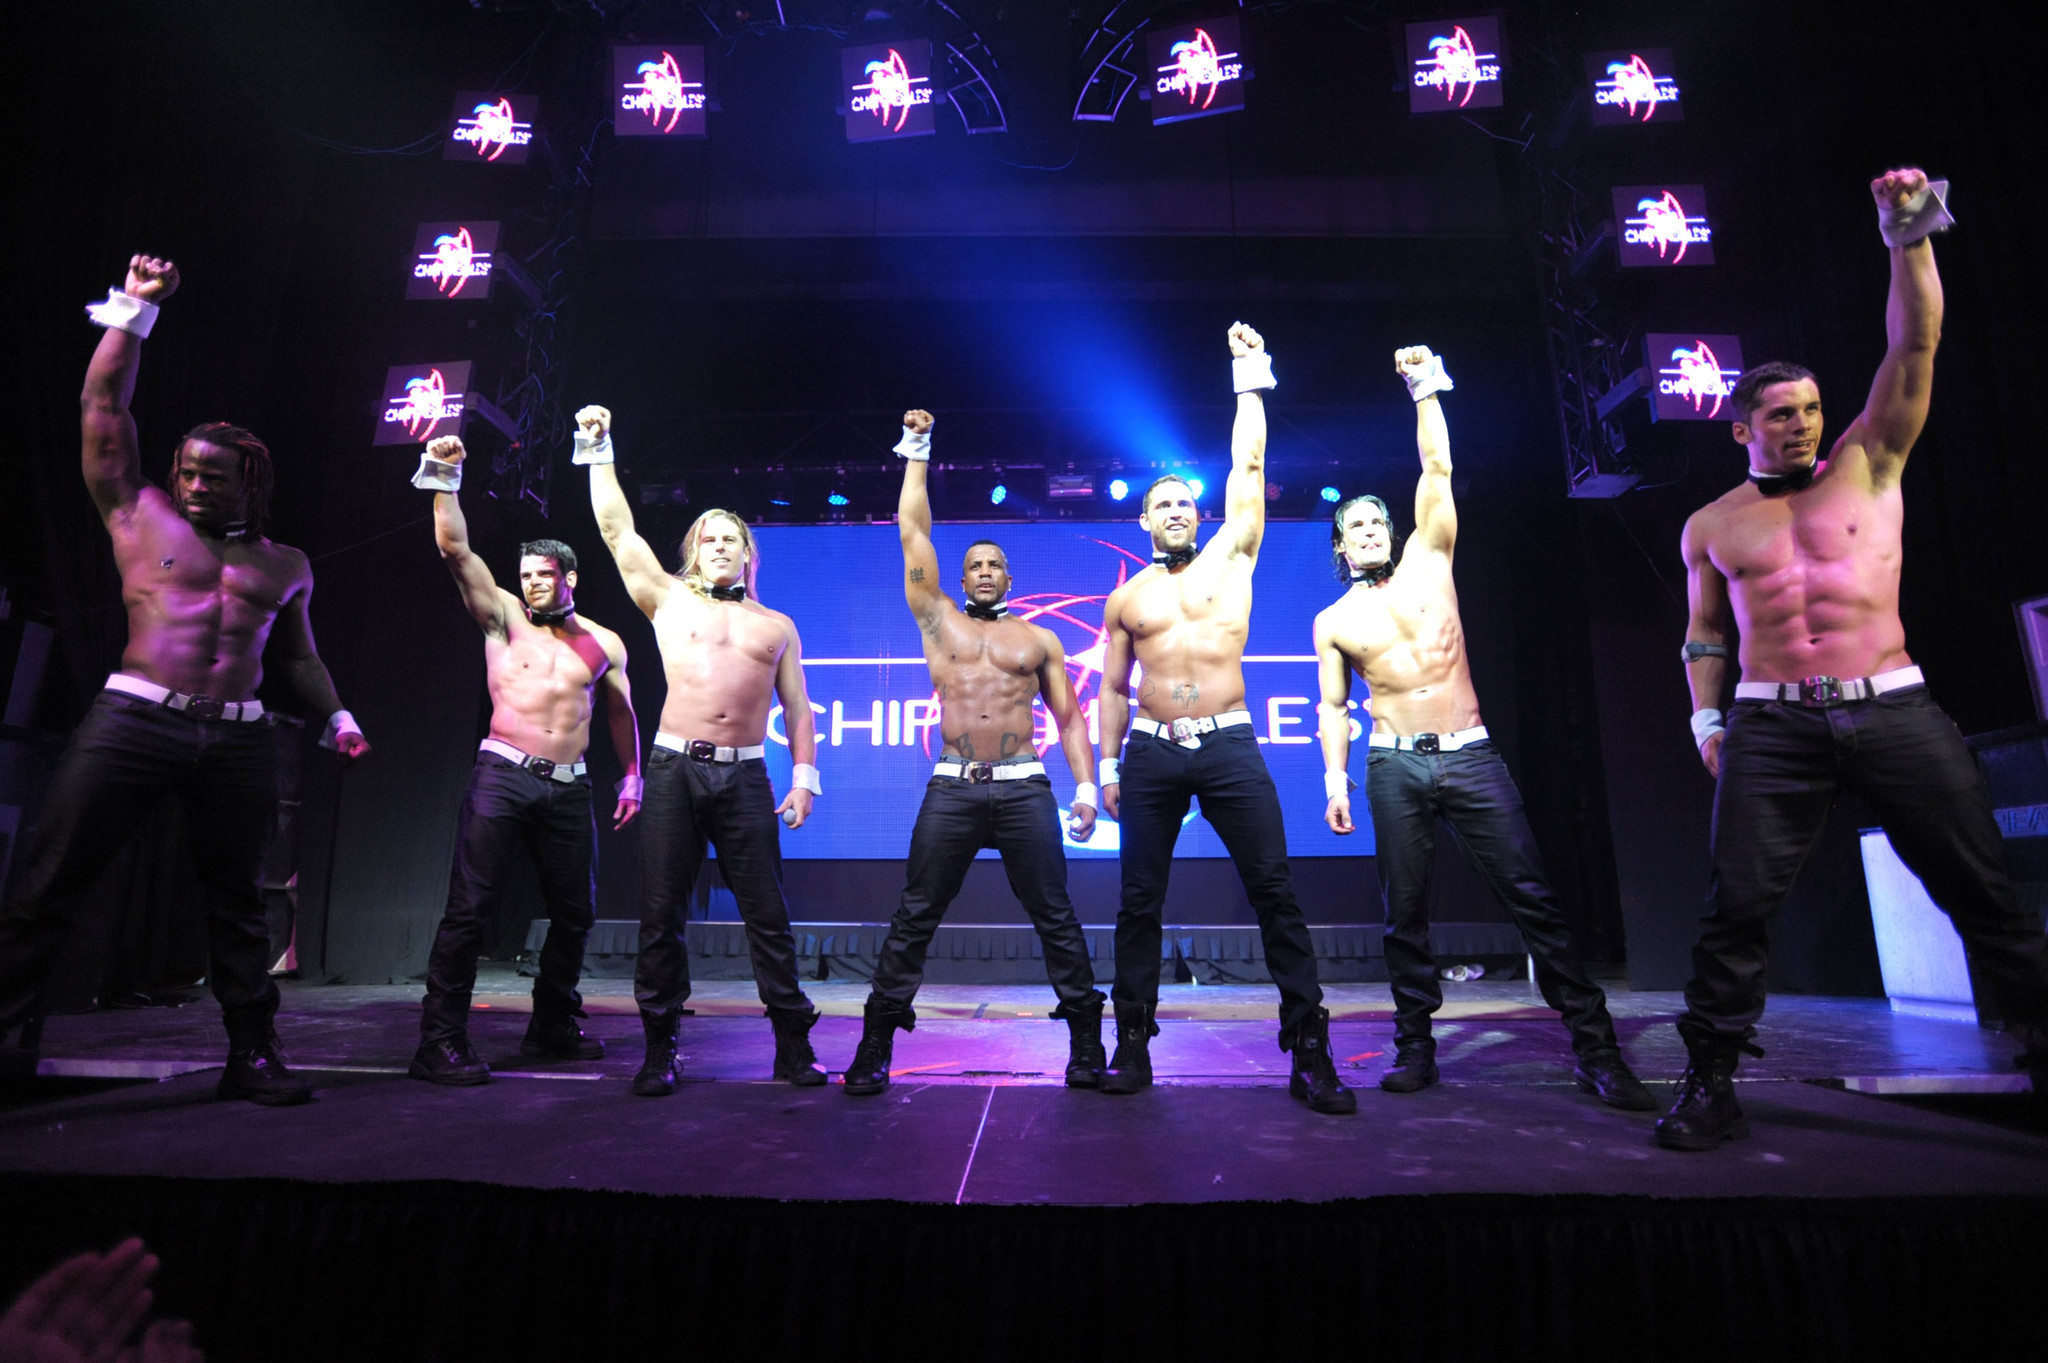 Chippendales open in Miami Beach - Chippendales